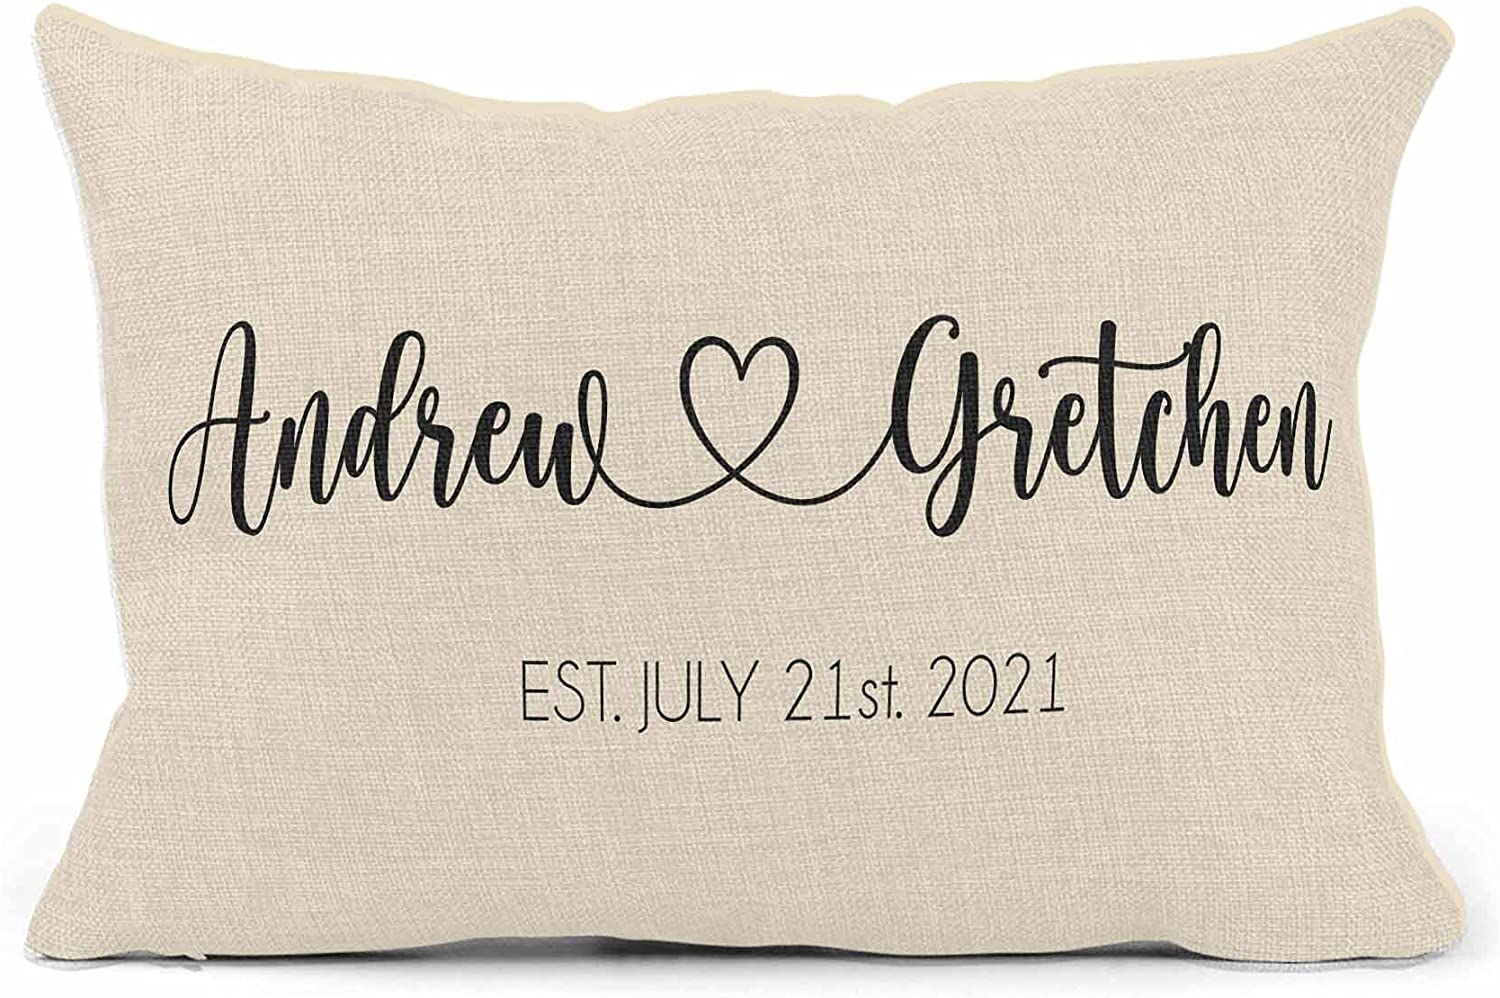 Wedding Gifts for Couples Unique 2021 for Couple - House Warming Presents for New Home - Cojines Decorativos para Sala - Personalized Pillows with Names - Housewarming Gift (Design 5)